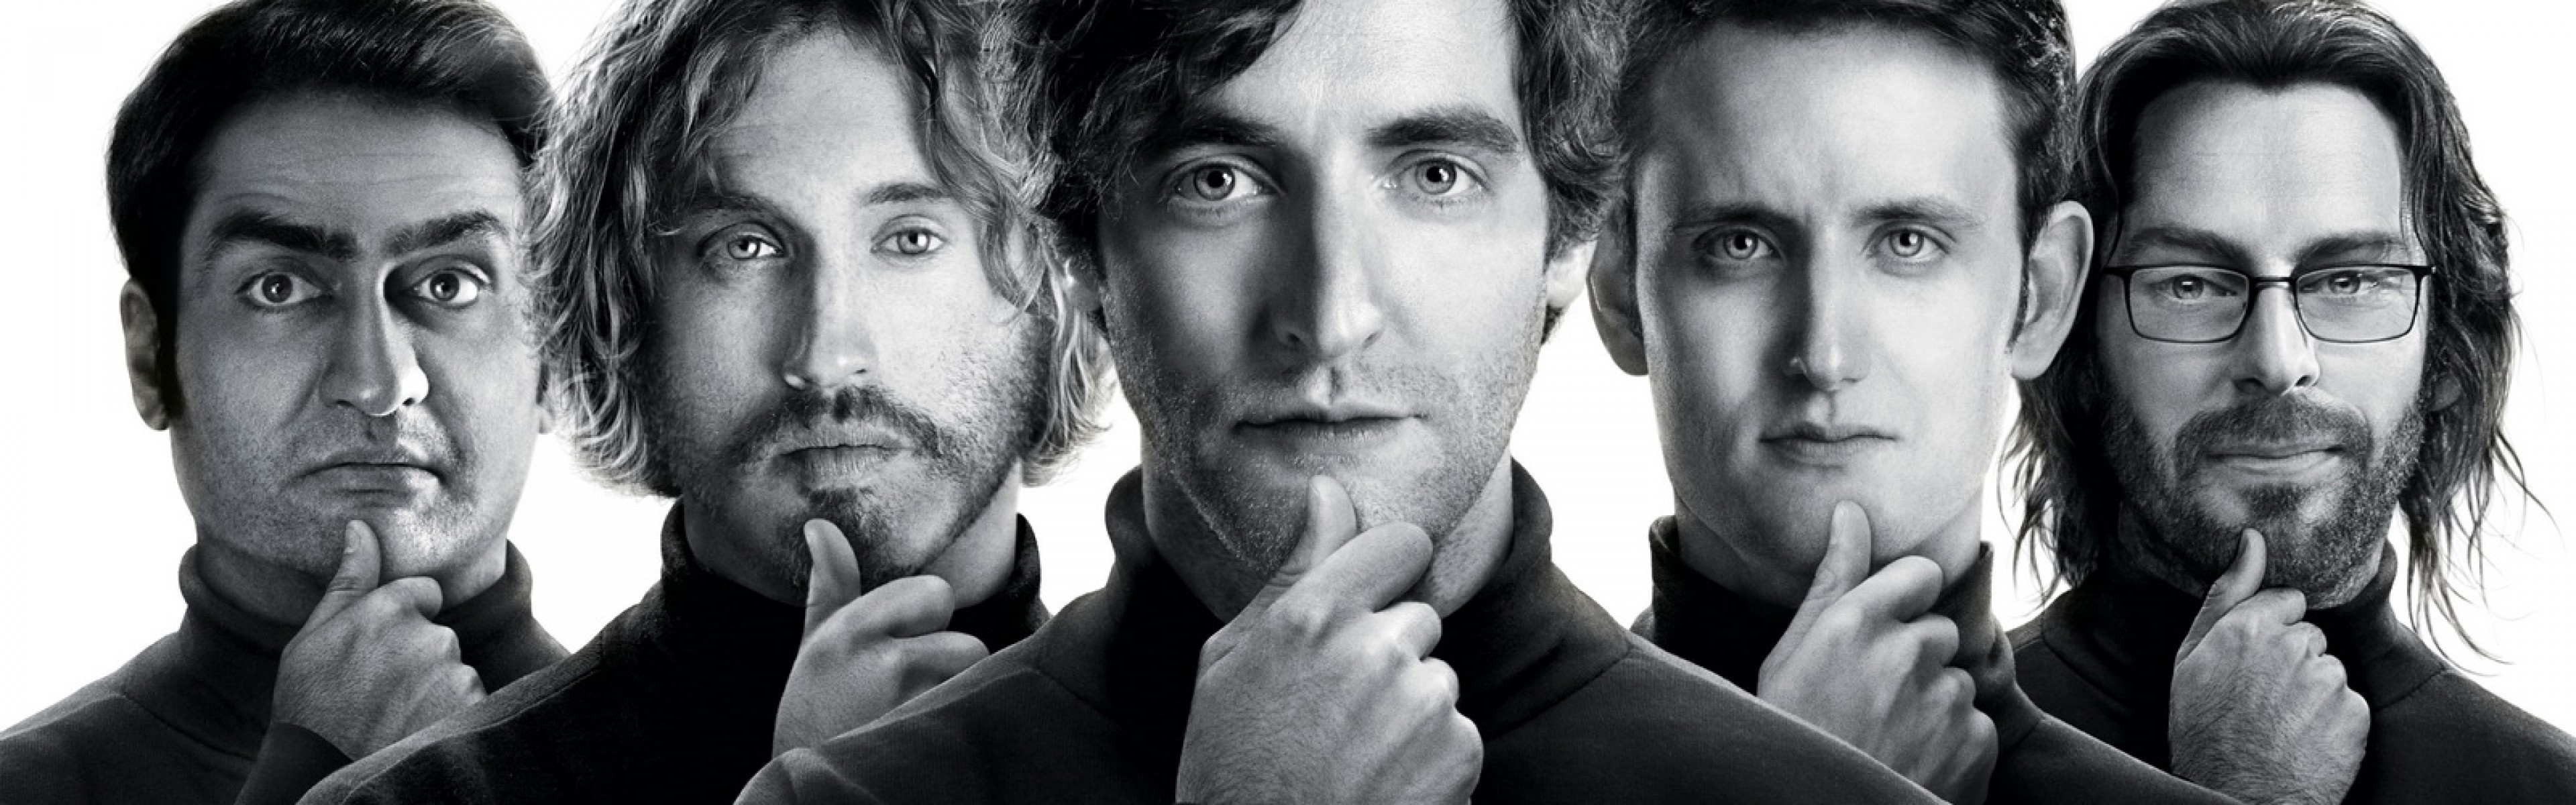 Silicon Valley Wallpapers 74 Images